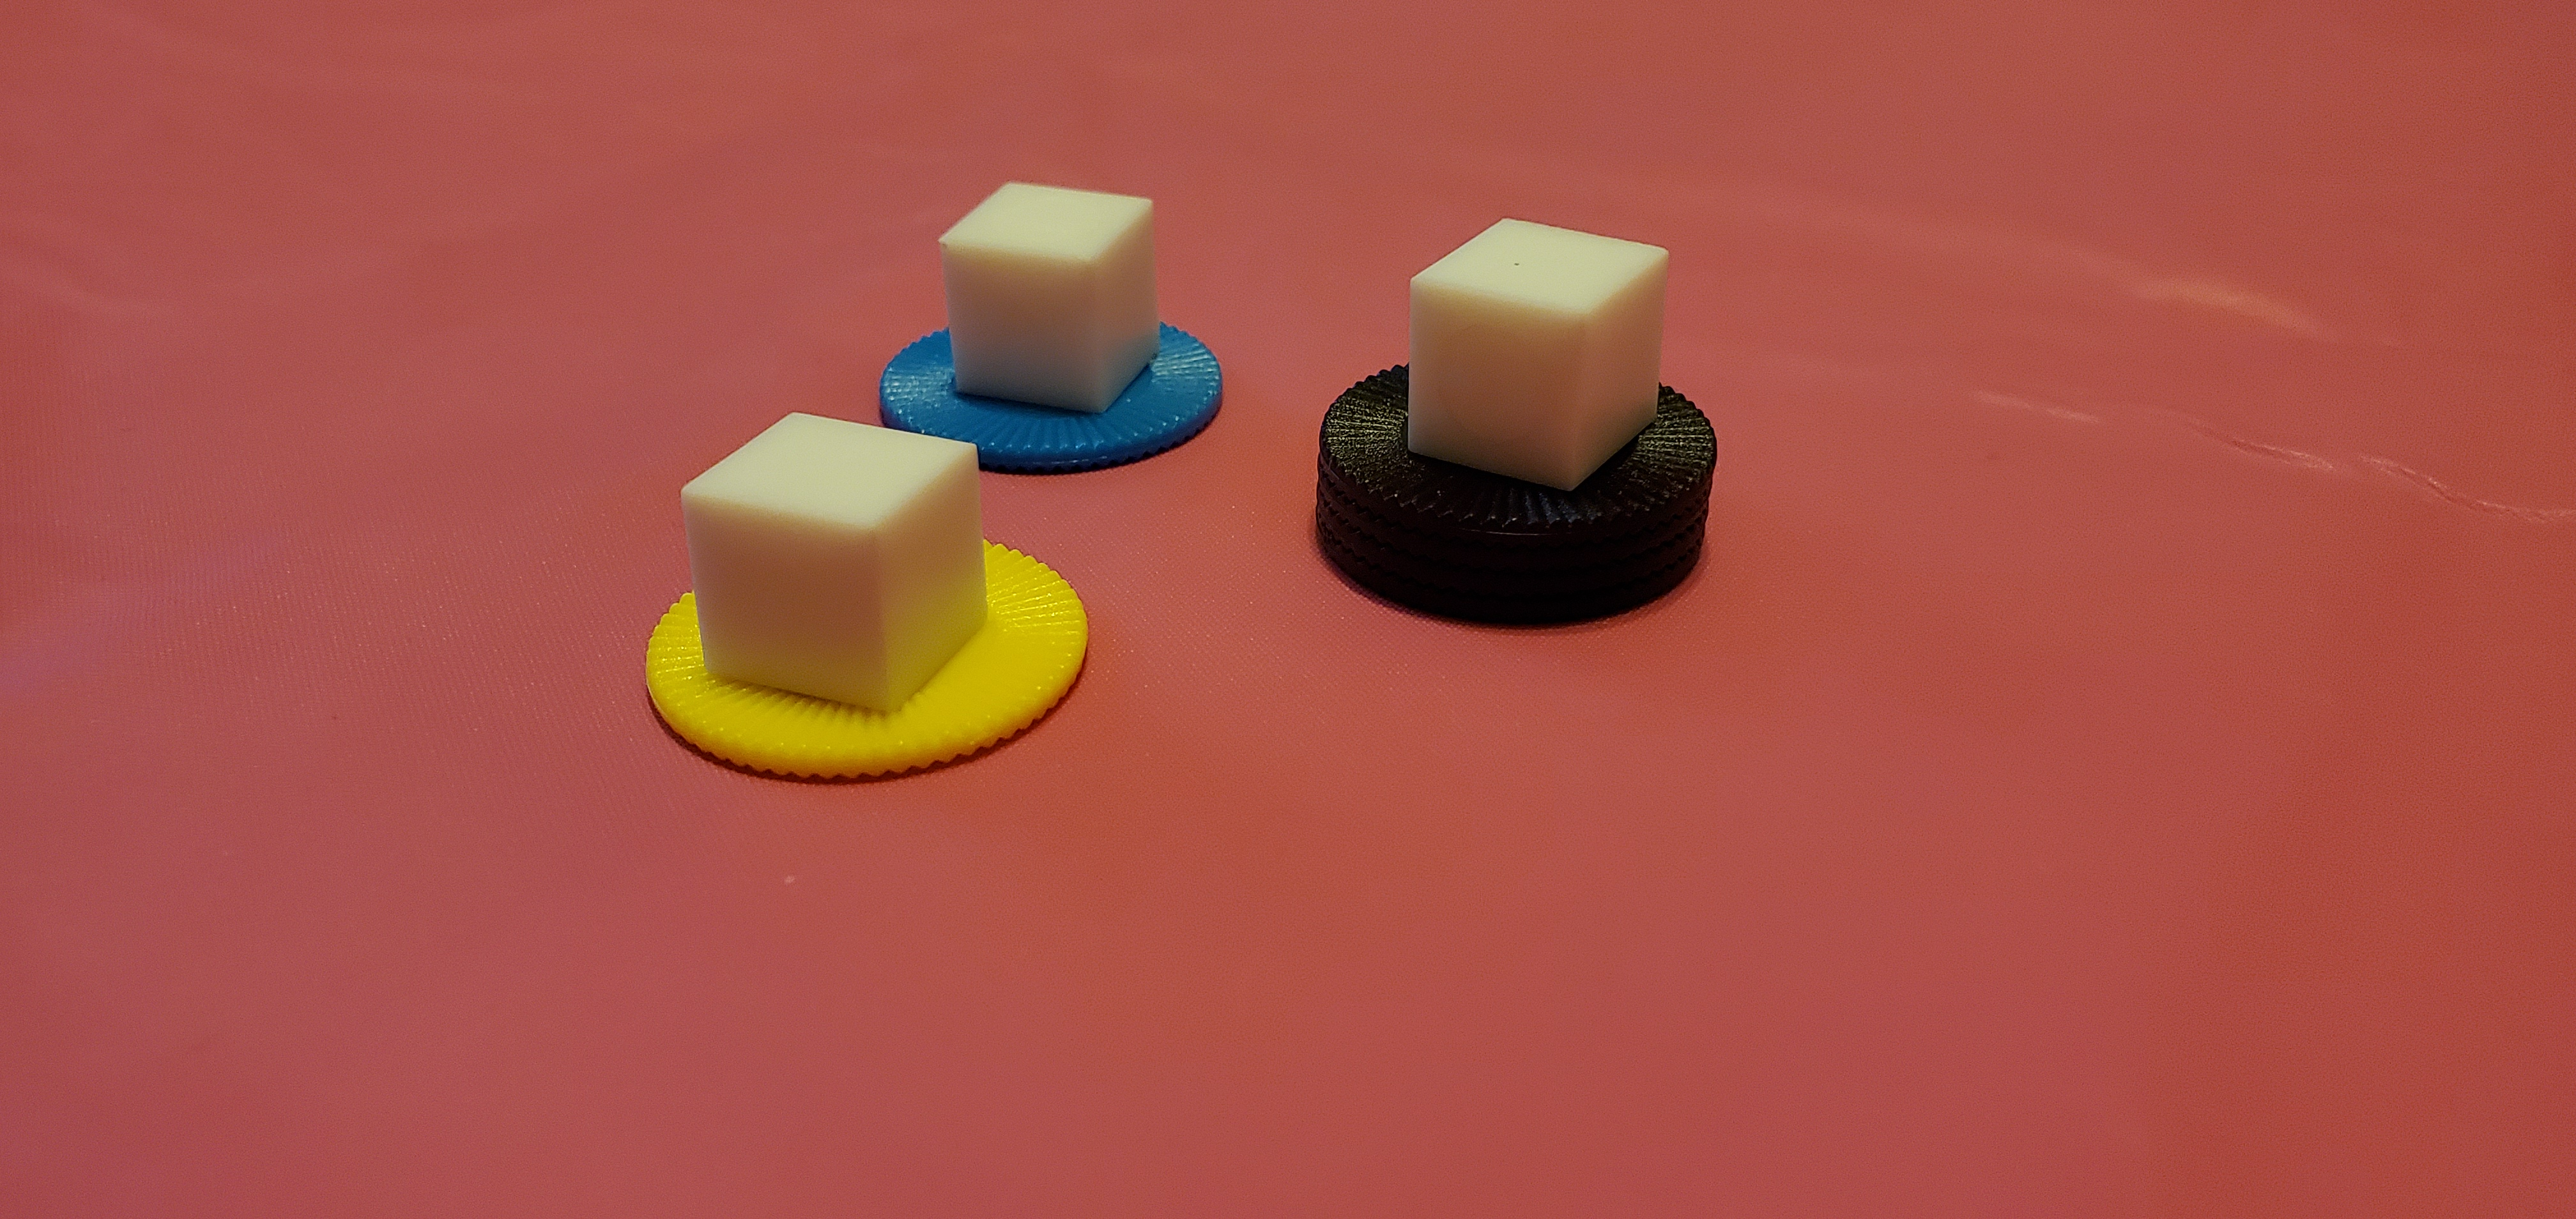 Acrylic gaming cubes on stacks of mini poker chips.